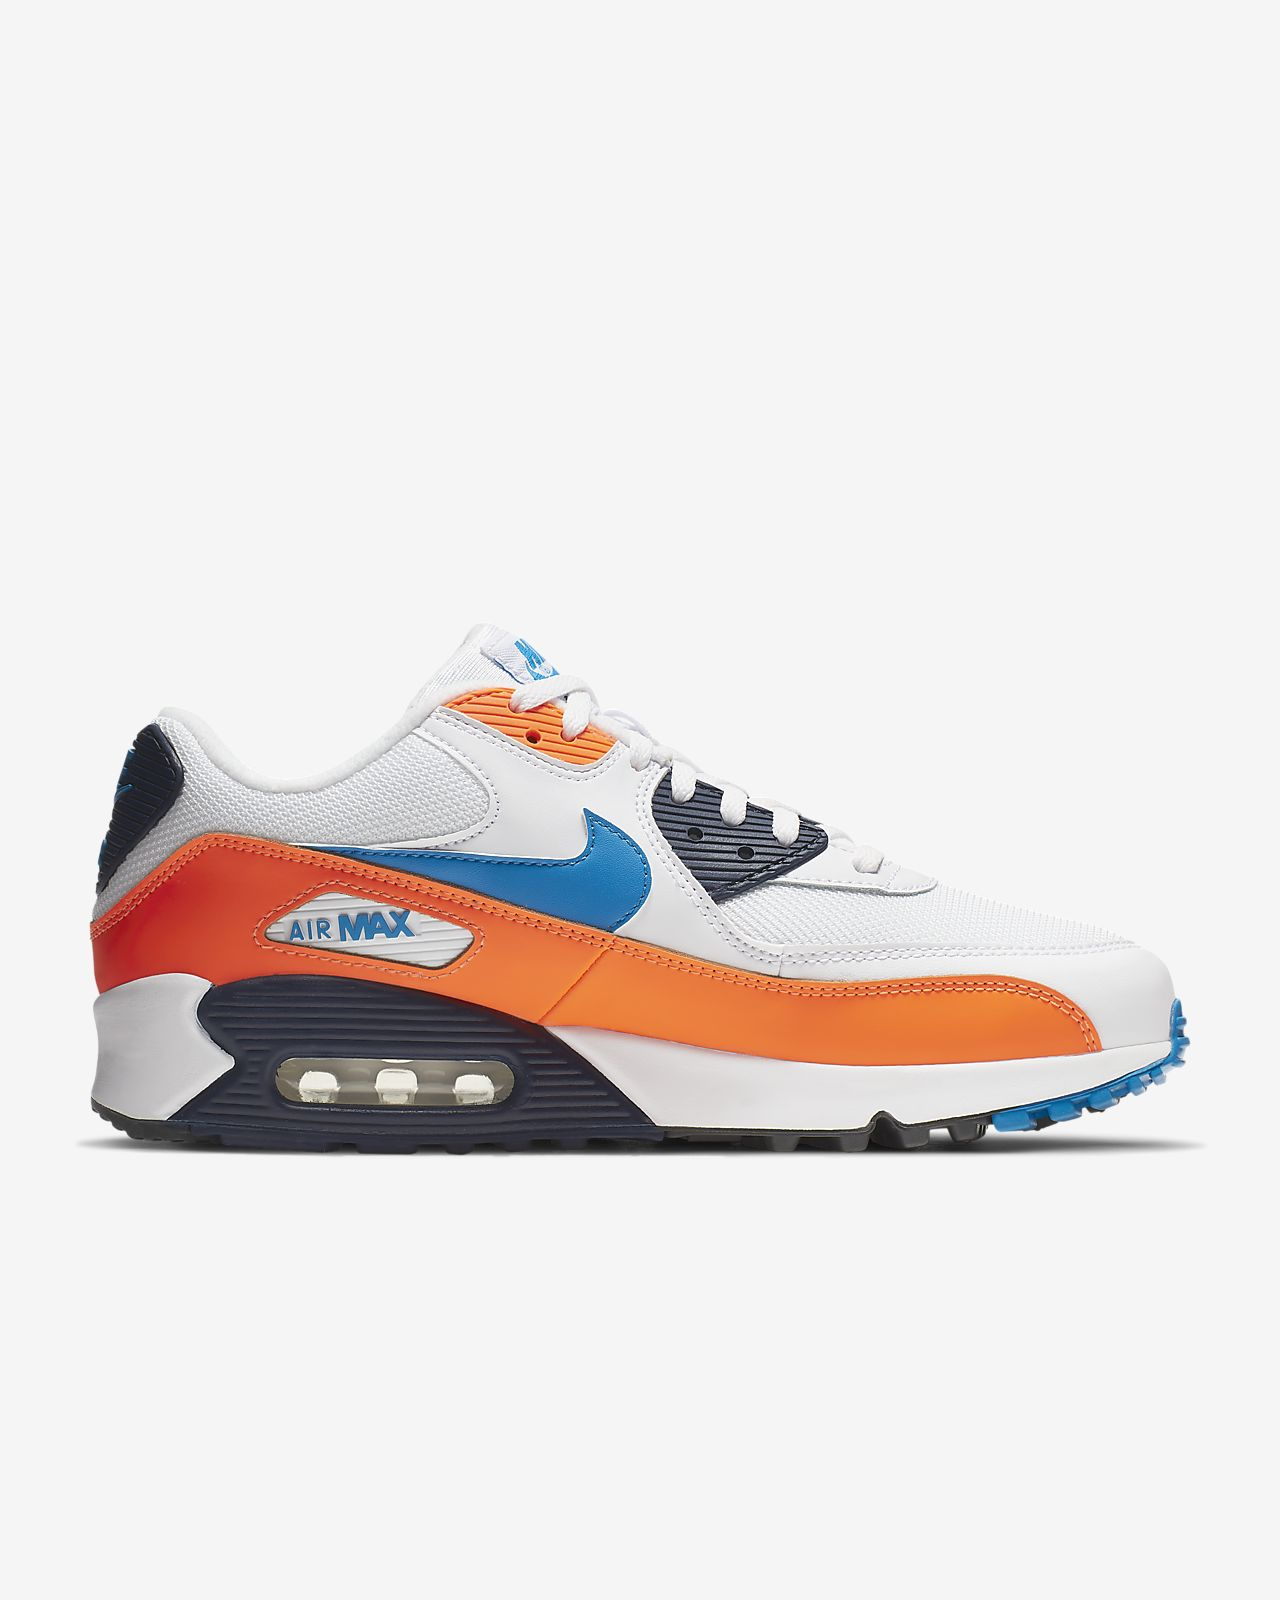 pas mal f51ad a0ba7 Nike Air Max 90 Essential Men's Shoe